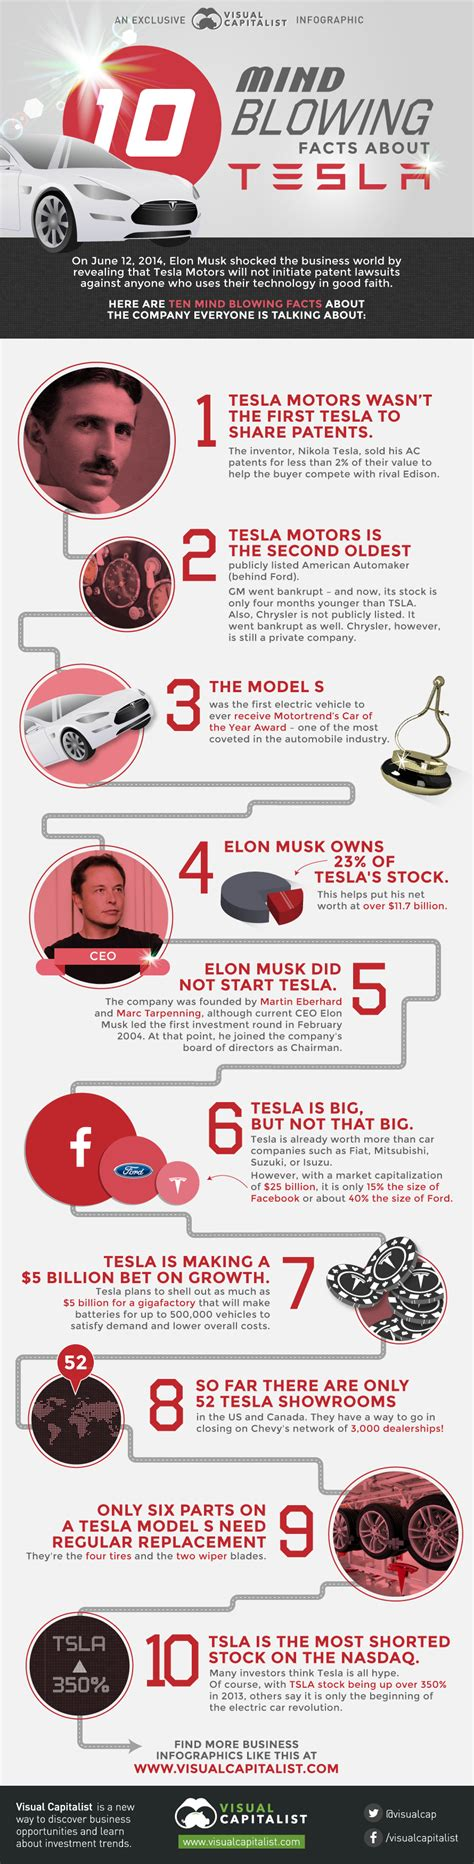 10 Mind Blowing Facts About Tesla Motors (tsla)  Visual. Modern Kitchen With Island Designs. Red Kitchen Chair Pads. Cheap Kitchen Storage Containers. Victorian Modern Kitchen. Kitchen Accessories Buy Online. Modular Kitchen Accessories Price List. Country Kitchen Restaurants. Southern Country Kitchen